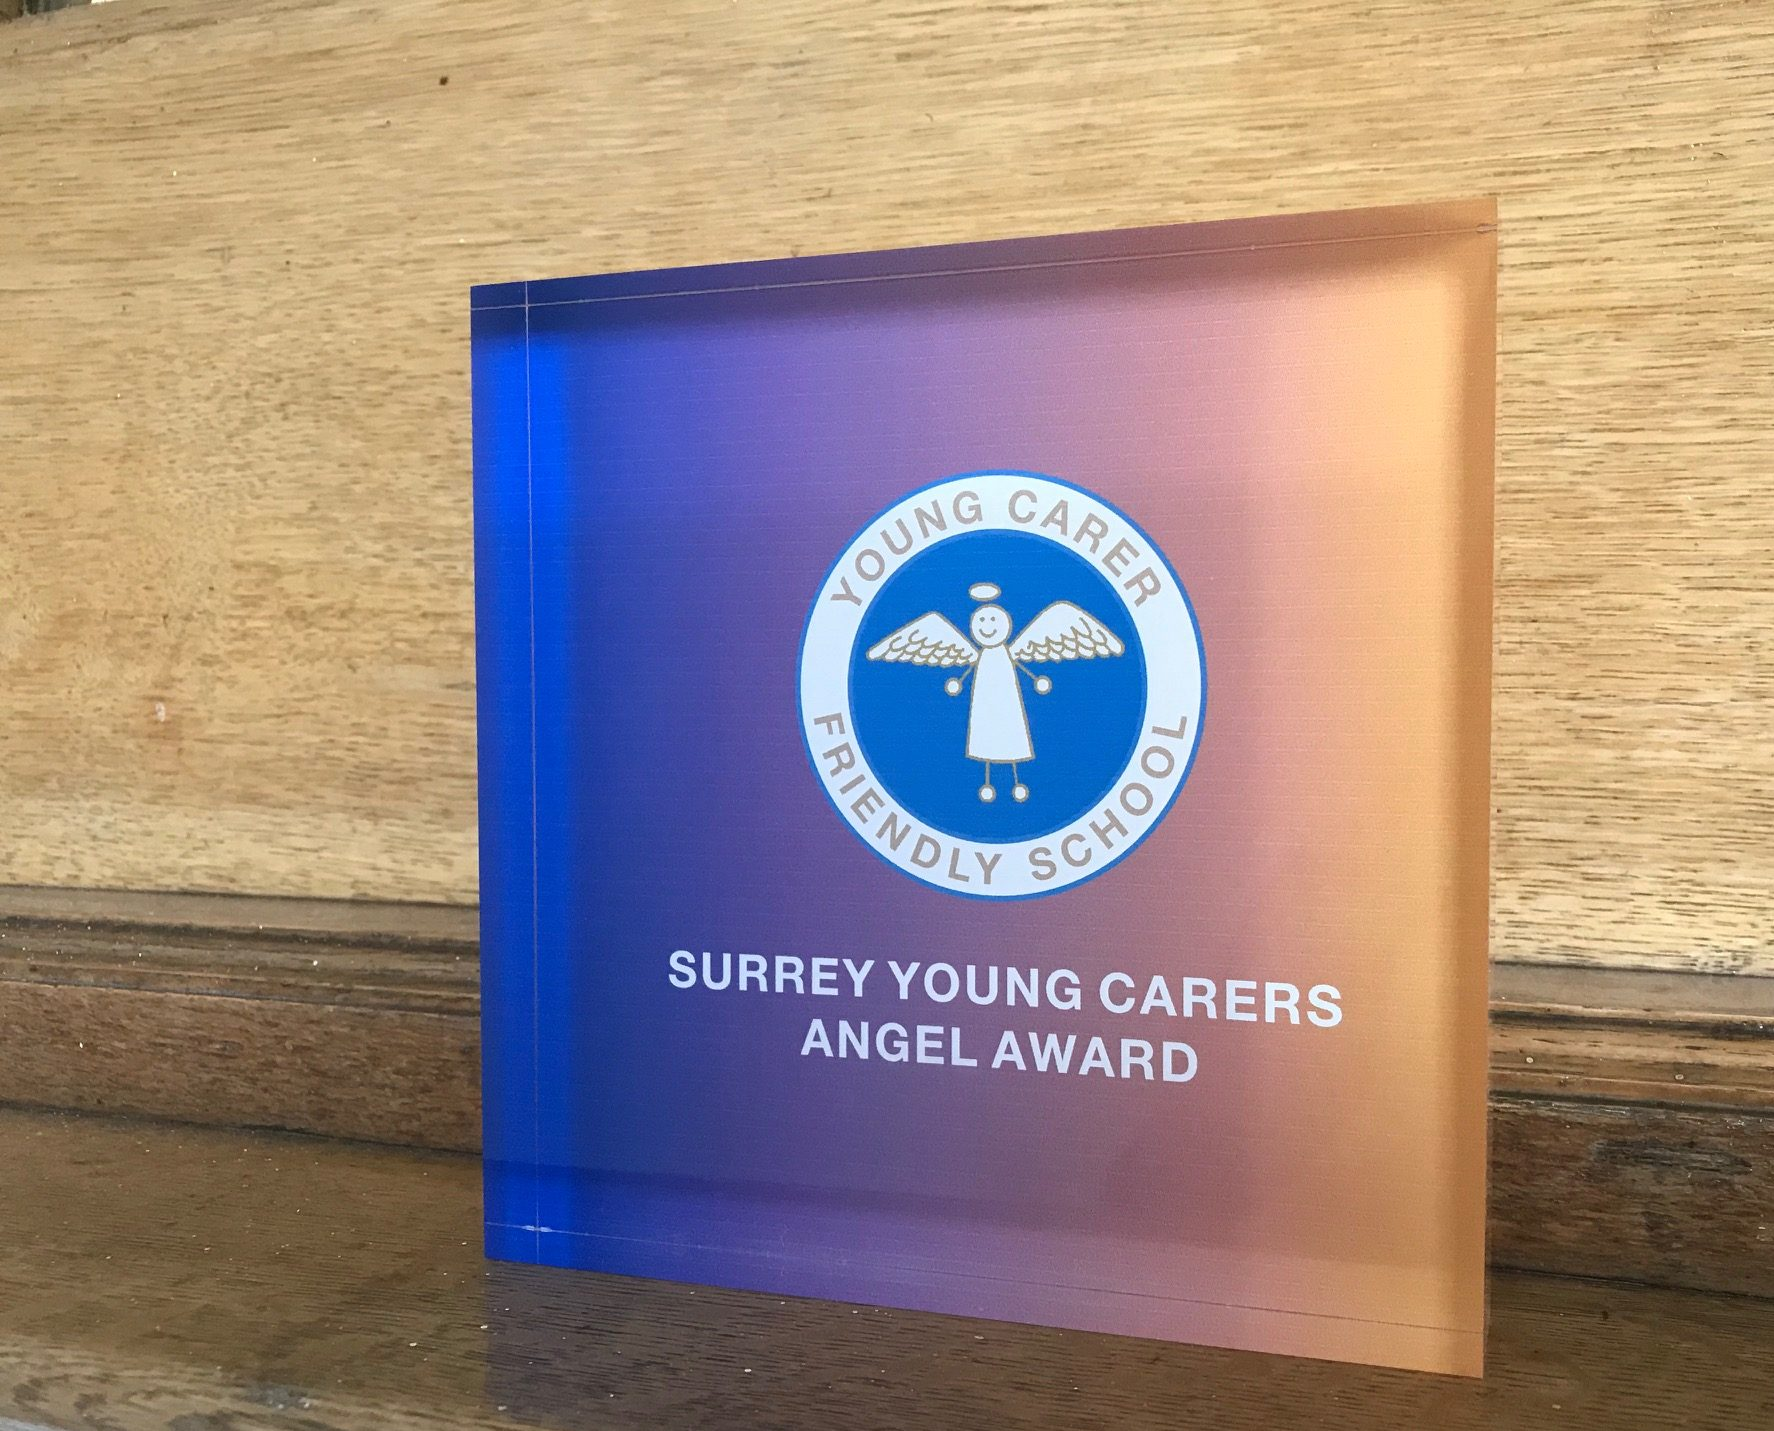 The Angel Award